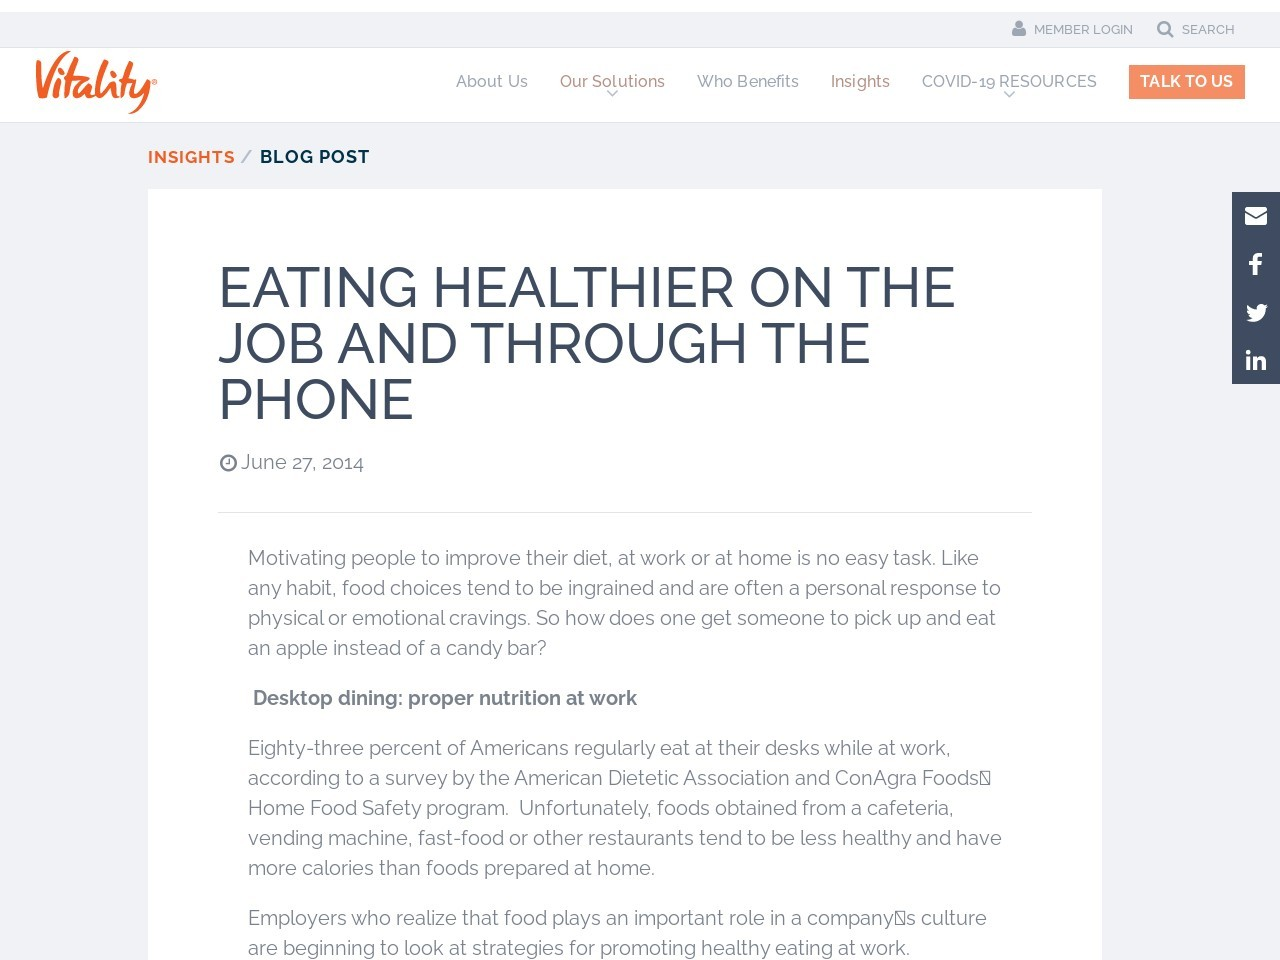 Eating healthier on the job and through the phone | Vitality